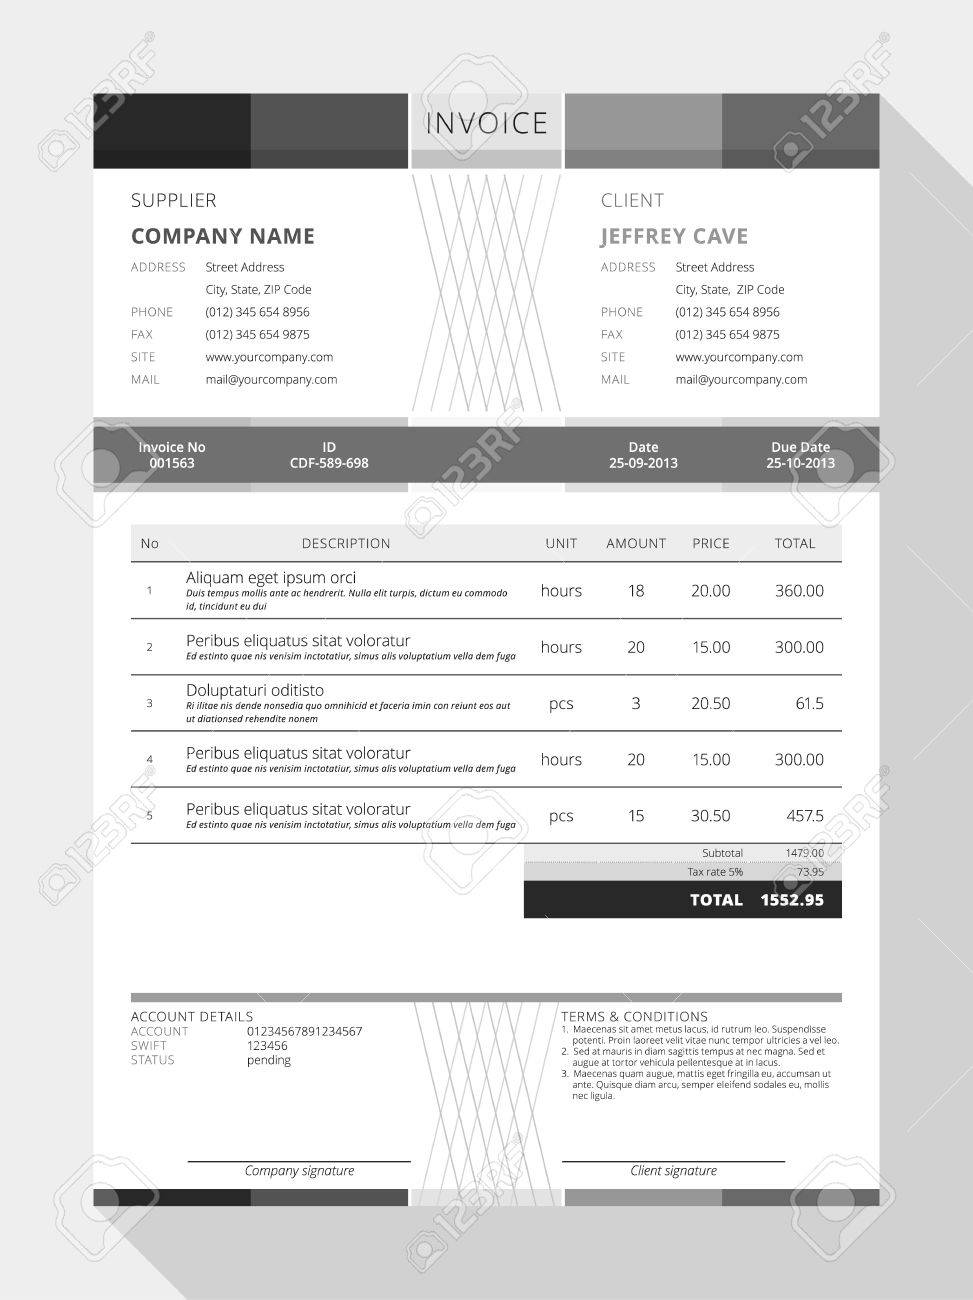 Usdgus  Inspiring Design An Invoice  Professional Graphic Design Invoice  With Glamorous Vector Customizable Invoice Form Template Design Vector   Design An Invoice With Alluring Read Receipt Android App Also Template Payment Receipt In Addition Scan Bills And Receipts And Acknowledge Receipt Of As Well As Small Business Receipt Template Additionally Current Account Receipts From Happytomco With Usdgus  Glamorous Design An Invoice  Professional Graphic Design Invoice  With Alluring Vector Customizable Invoice Form Template Design Vector   Design An Invoice And Inspiring Read Receipt Android App Also Template Payment Receipt In Addition Scan Bills And Receipts From Happytomco